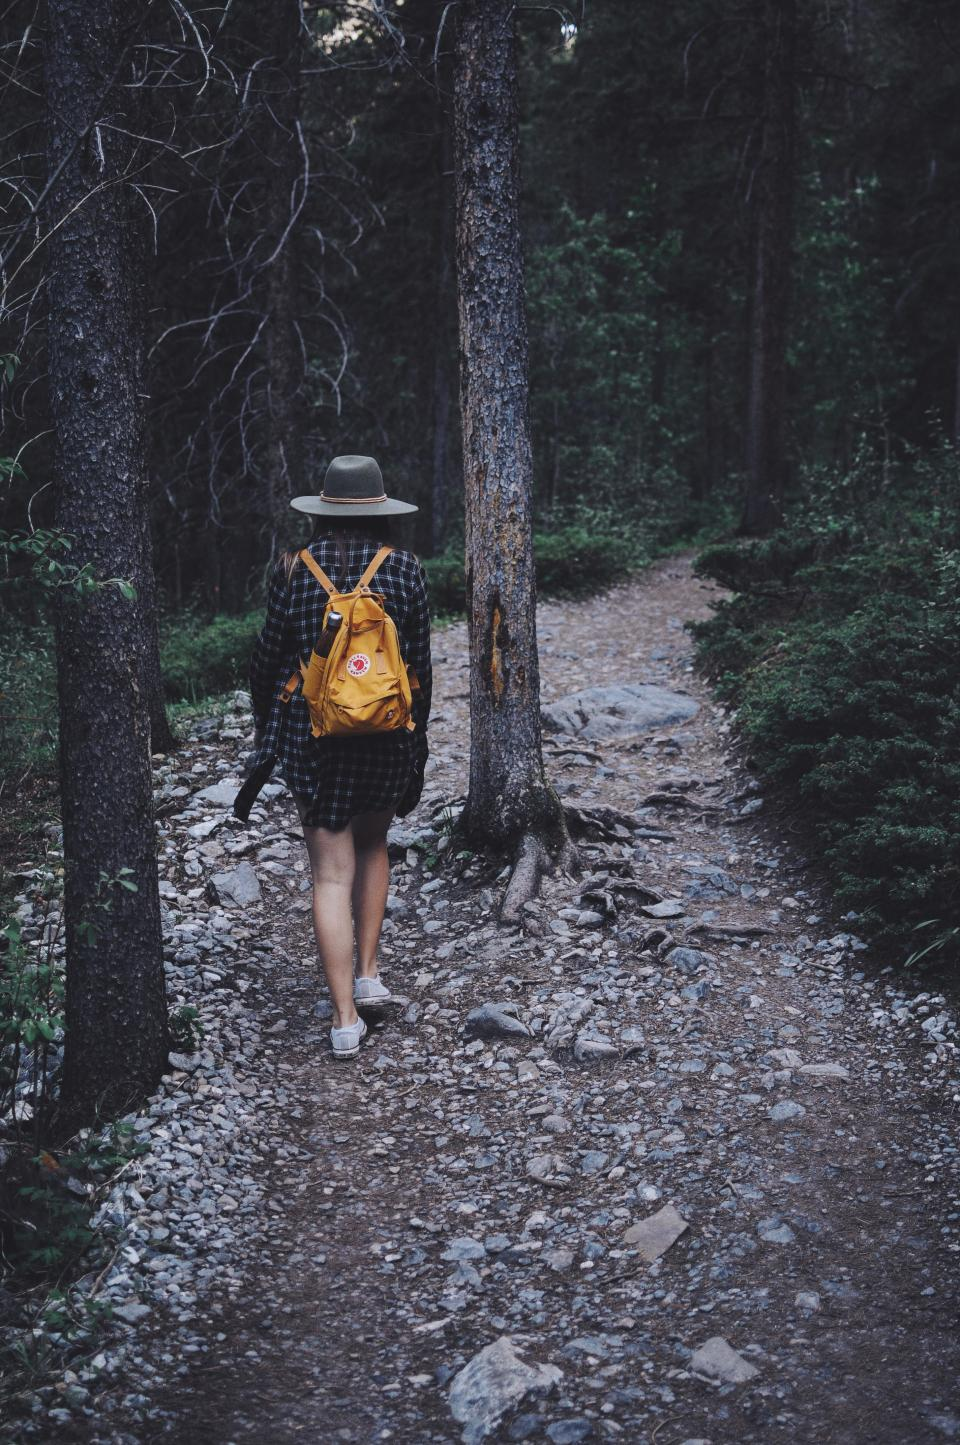 dark people alone girl walking hiking forest plants trees pathway travel adventure outdoor nature